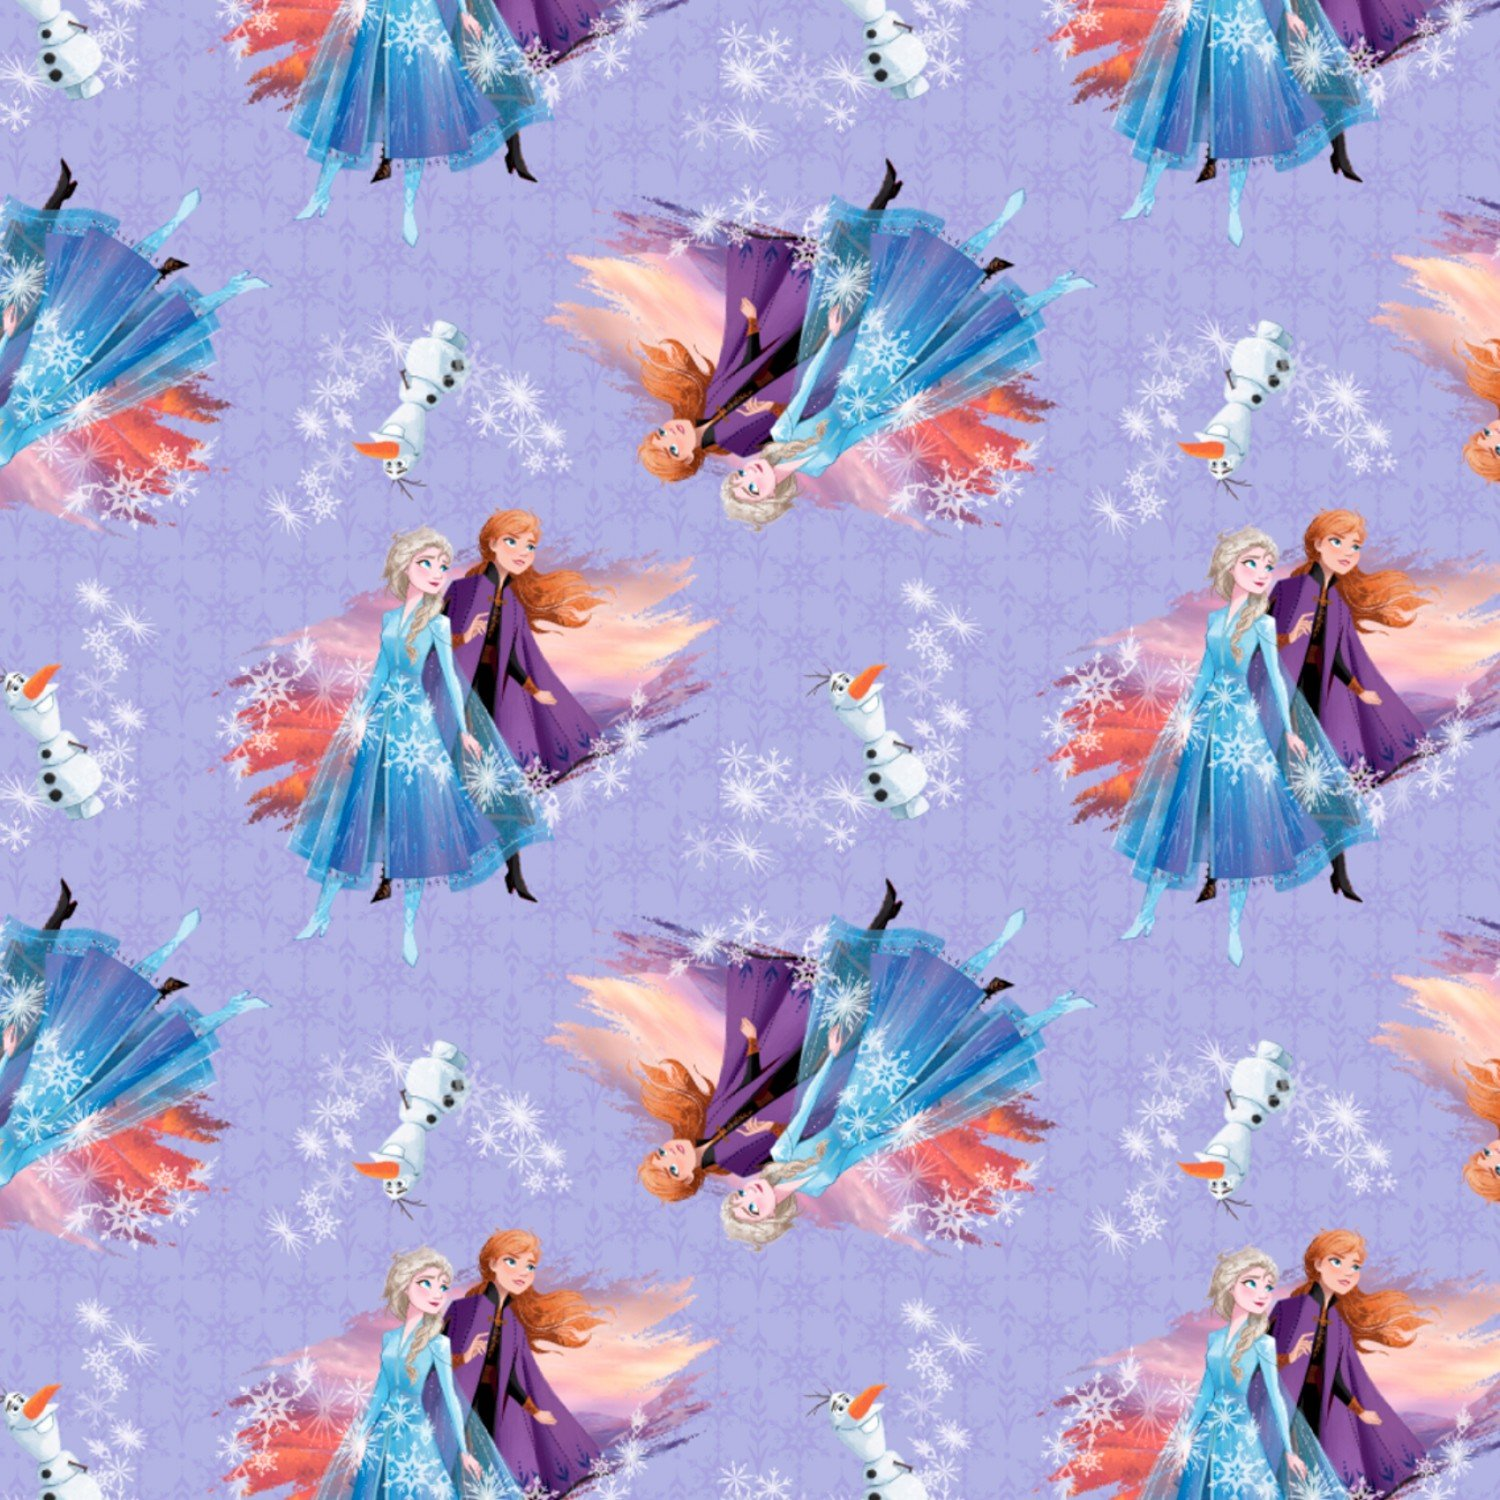 Frozen 2 Fabric Destiny Awaits Children's Fabric Yardage Cotton